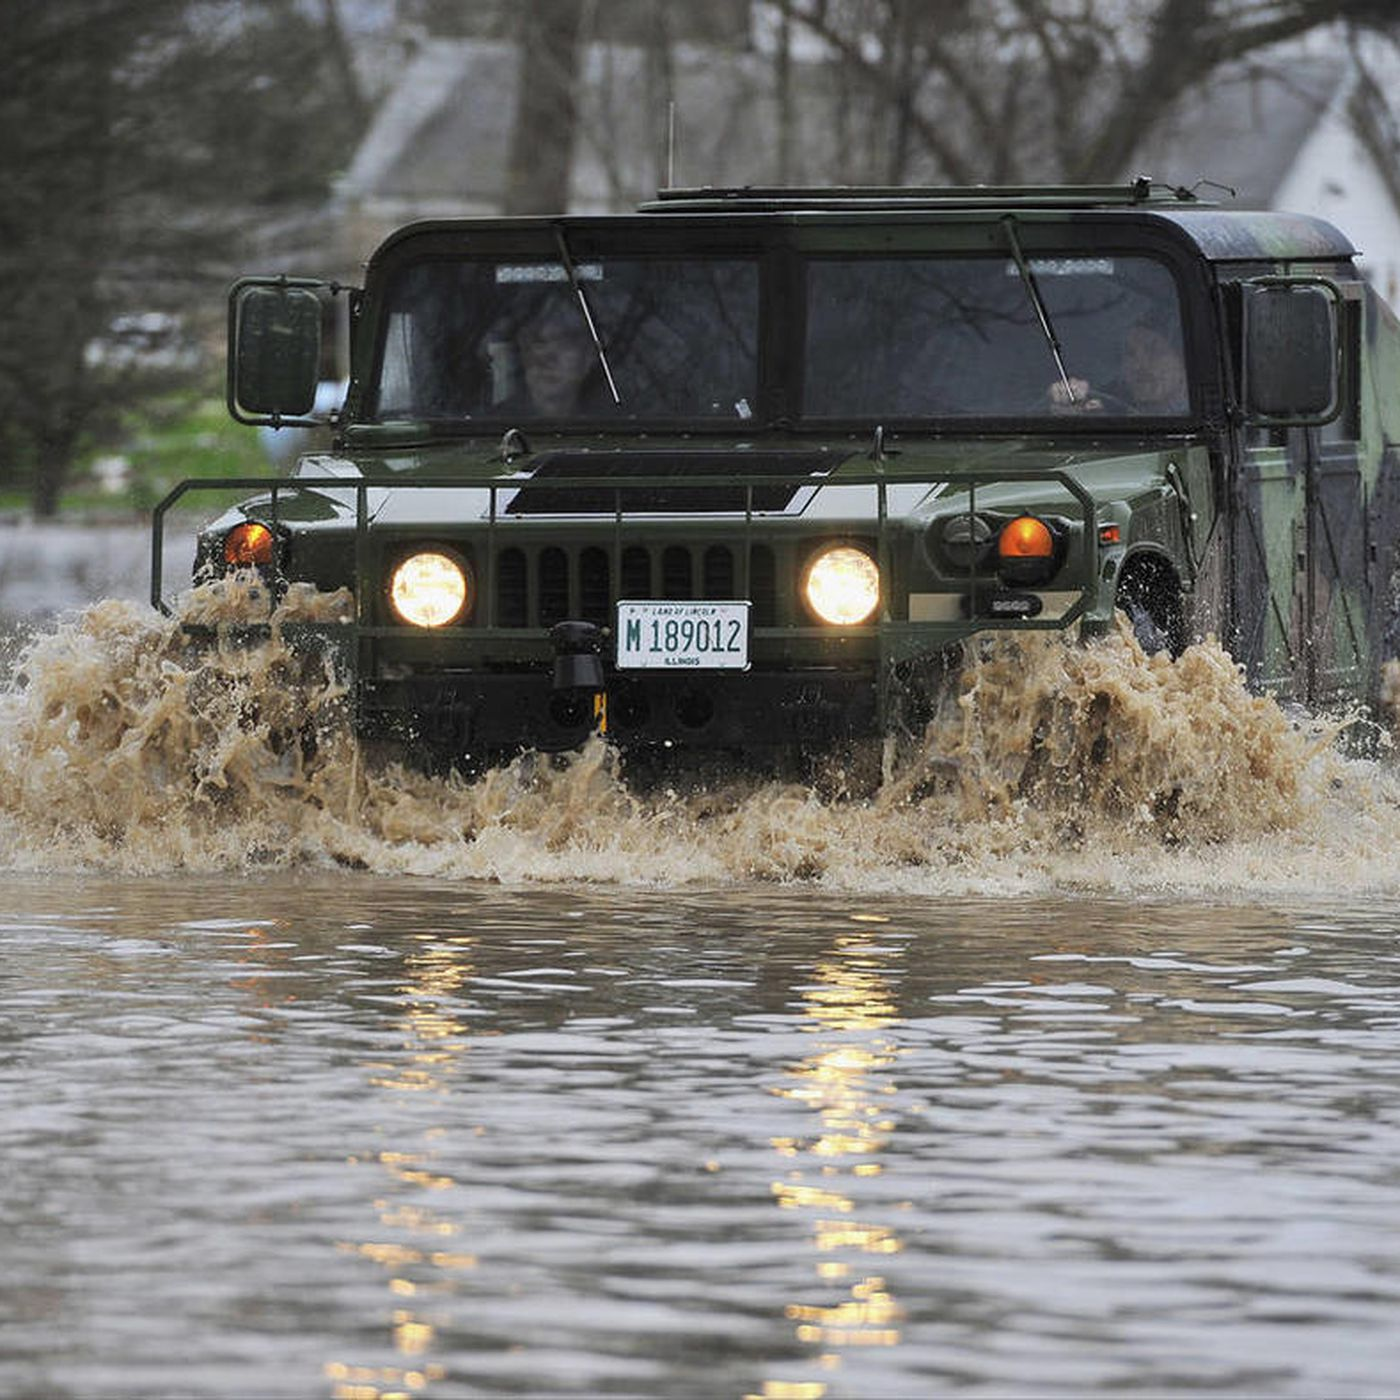 Floodwaters rising after storms deluge heartland - Deseret News